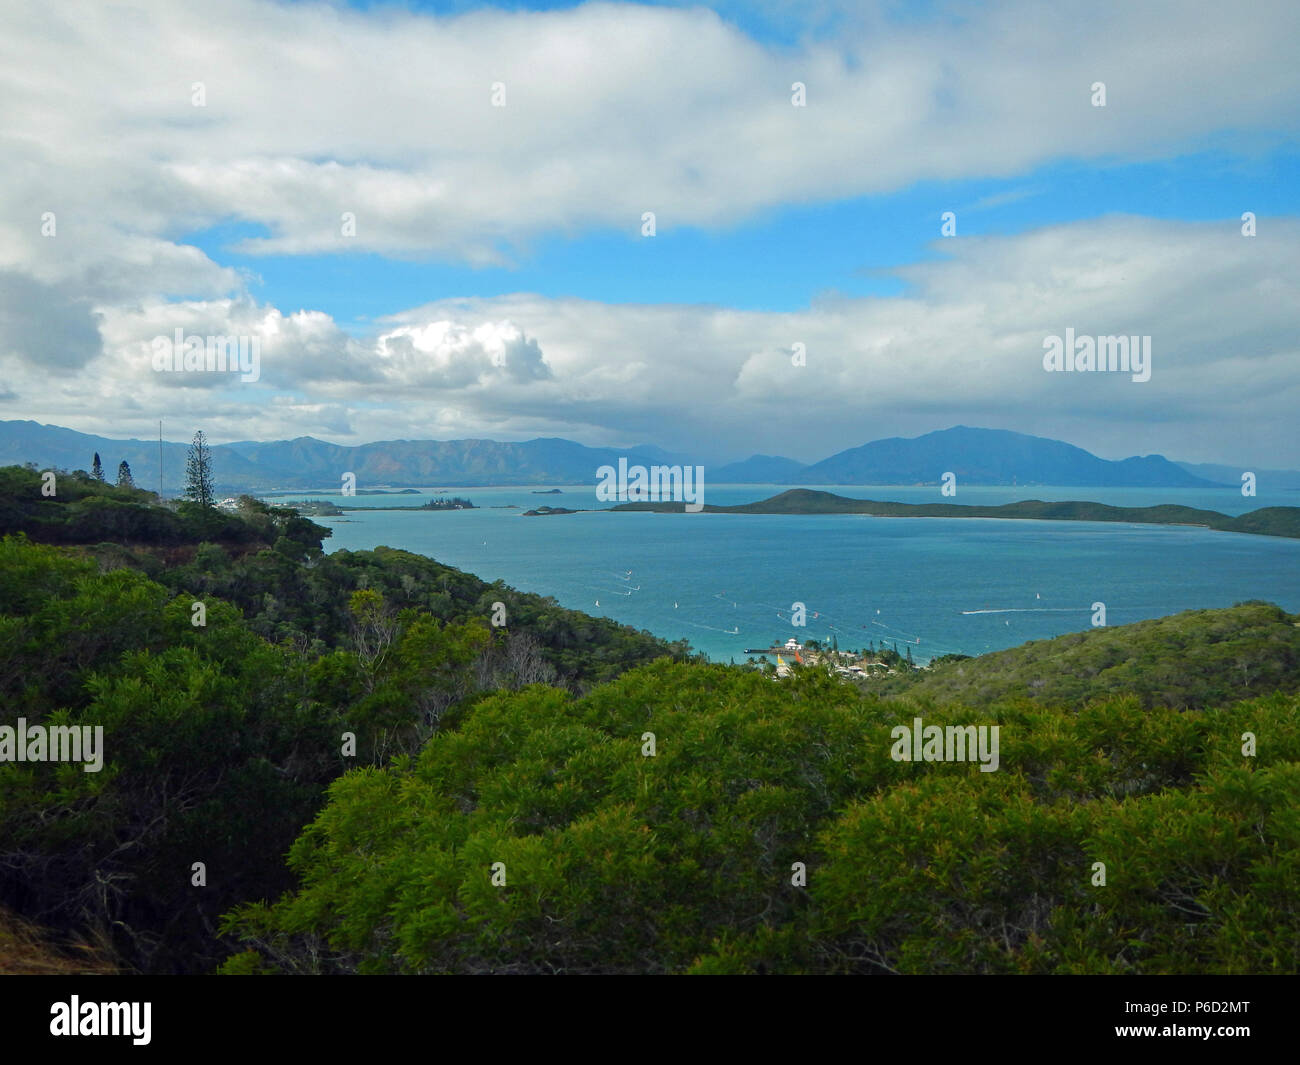 Aerial view from Noumea - Stock Image